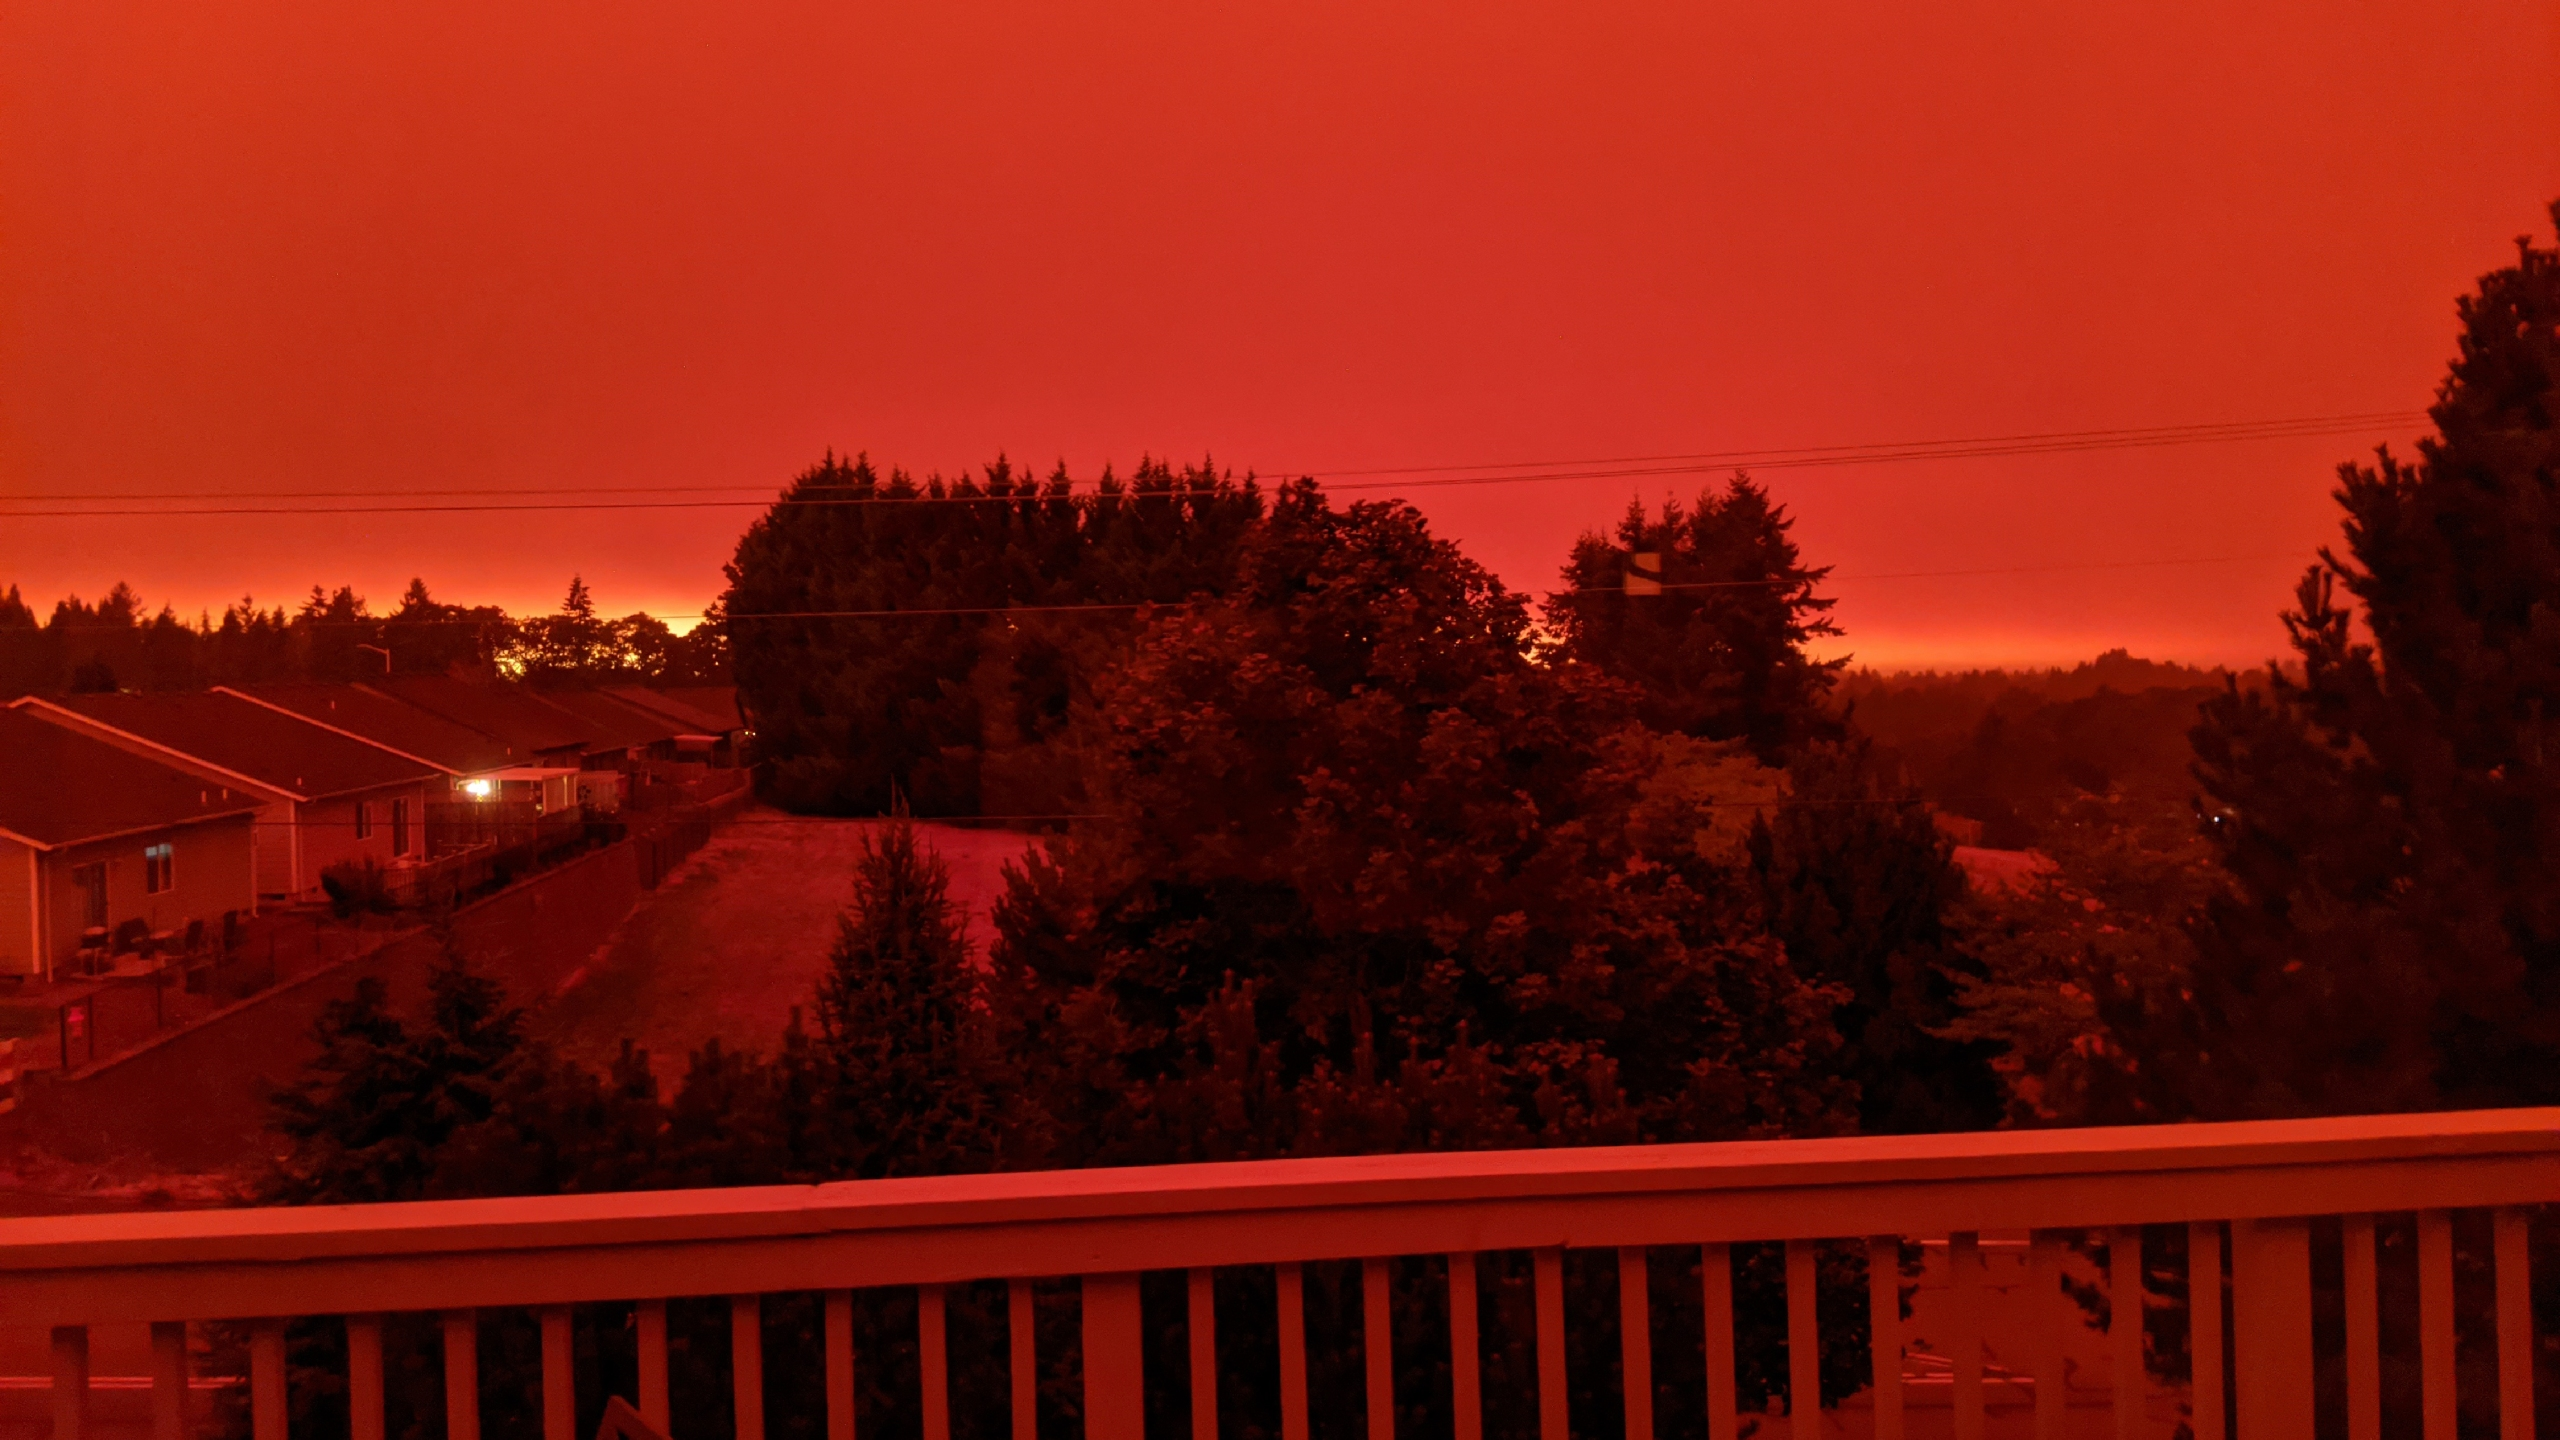 This photo taken from the home of Russ Casler in Salem, Ore., shows the smoke-darkened sky well before sunset at around 5 p.m., Tuesday, Sept. 8, 2020. Strong winds and high temperatures continued to fuel catastrophic fires in many parts of Oregon on Wednesday, forcing thousands of people to flee from their homes and making for poor air quality throughout the West. Huge wildfires also continued to grow in neighboring Washington state. (Russ Casler via AP)